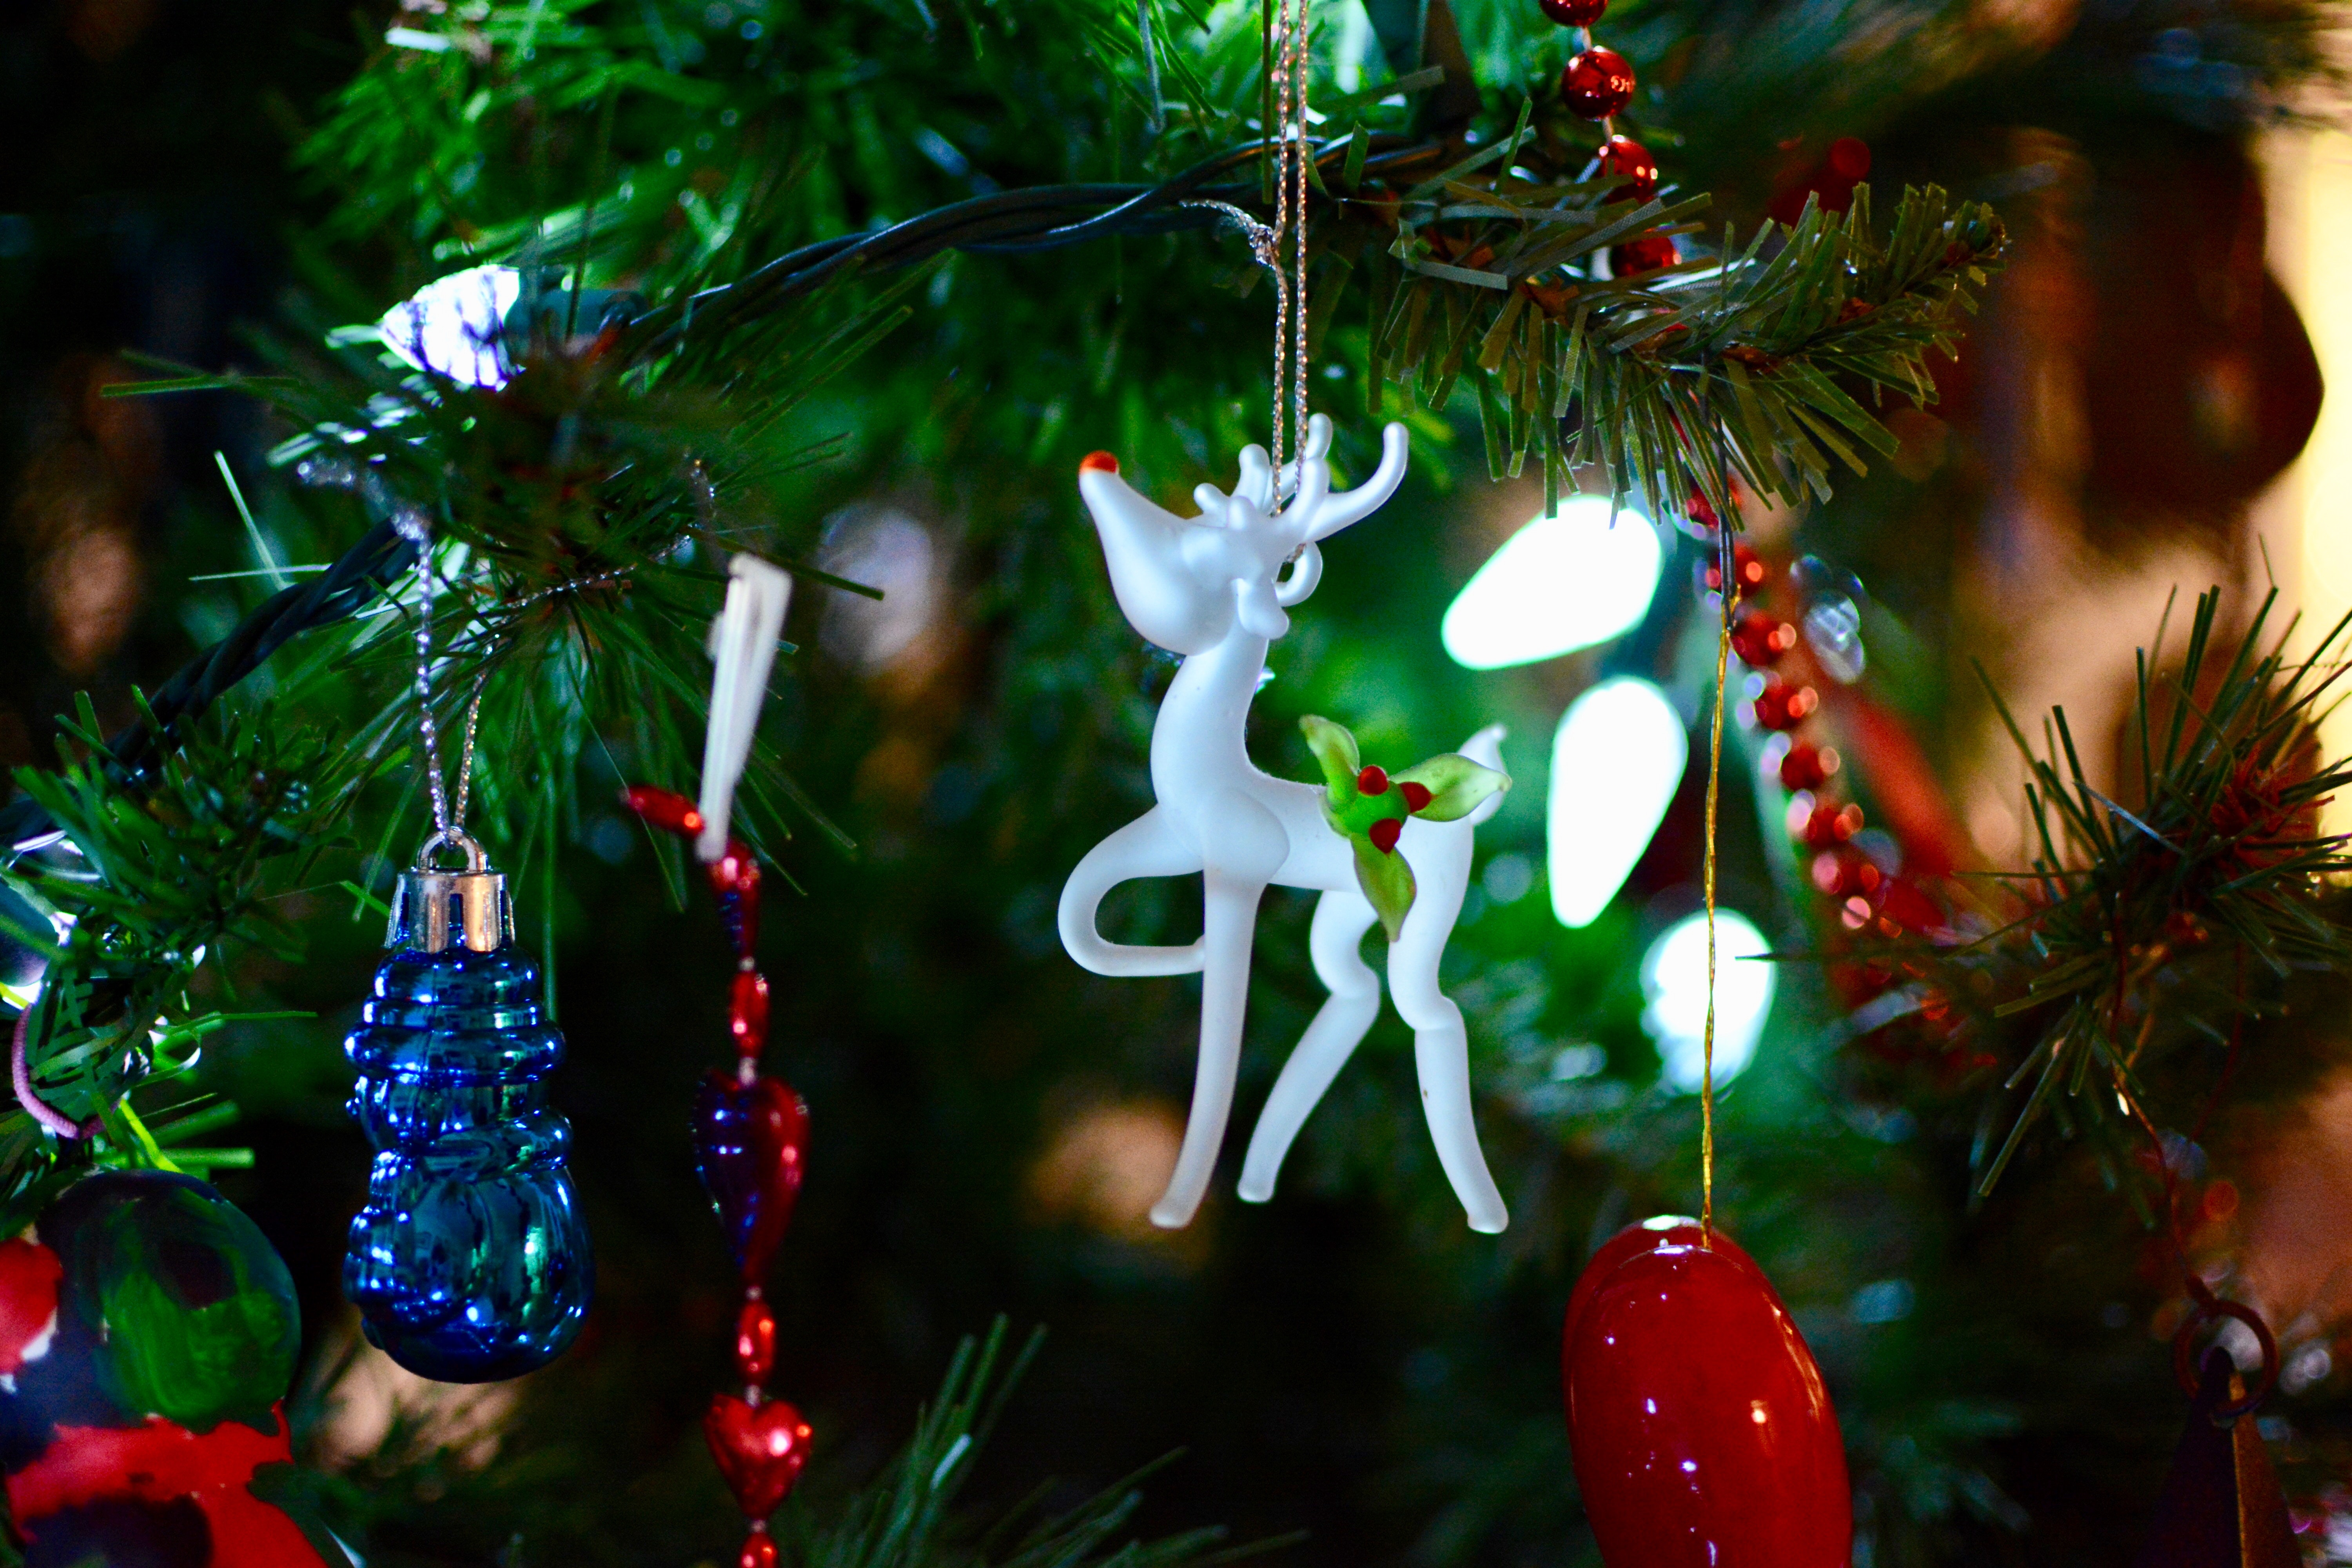 Free stock photos of christmas ornament · Pexels